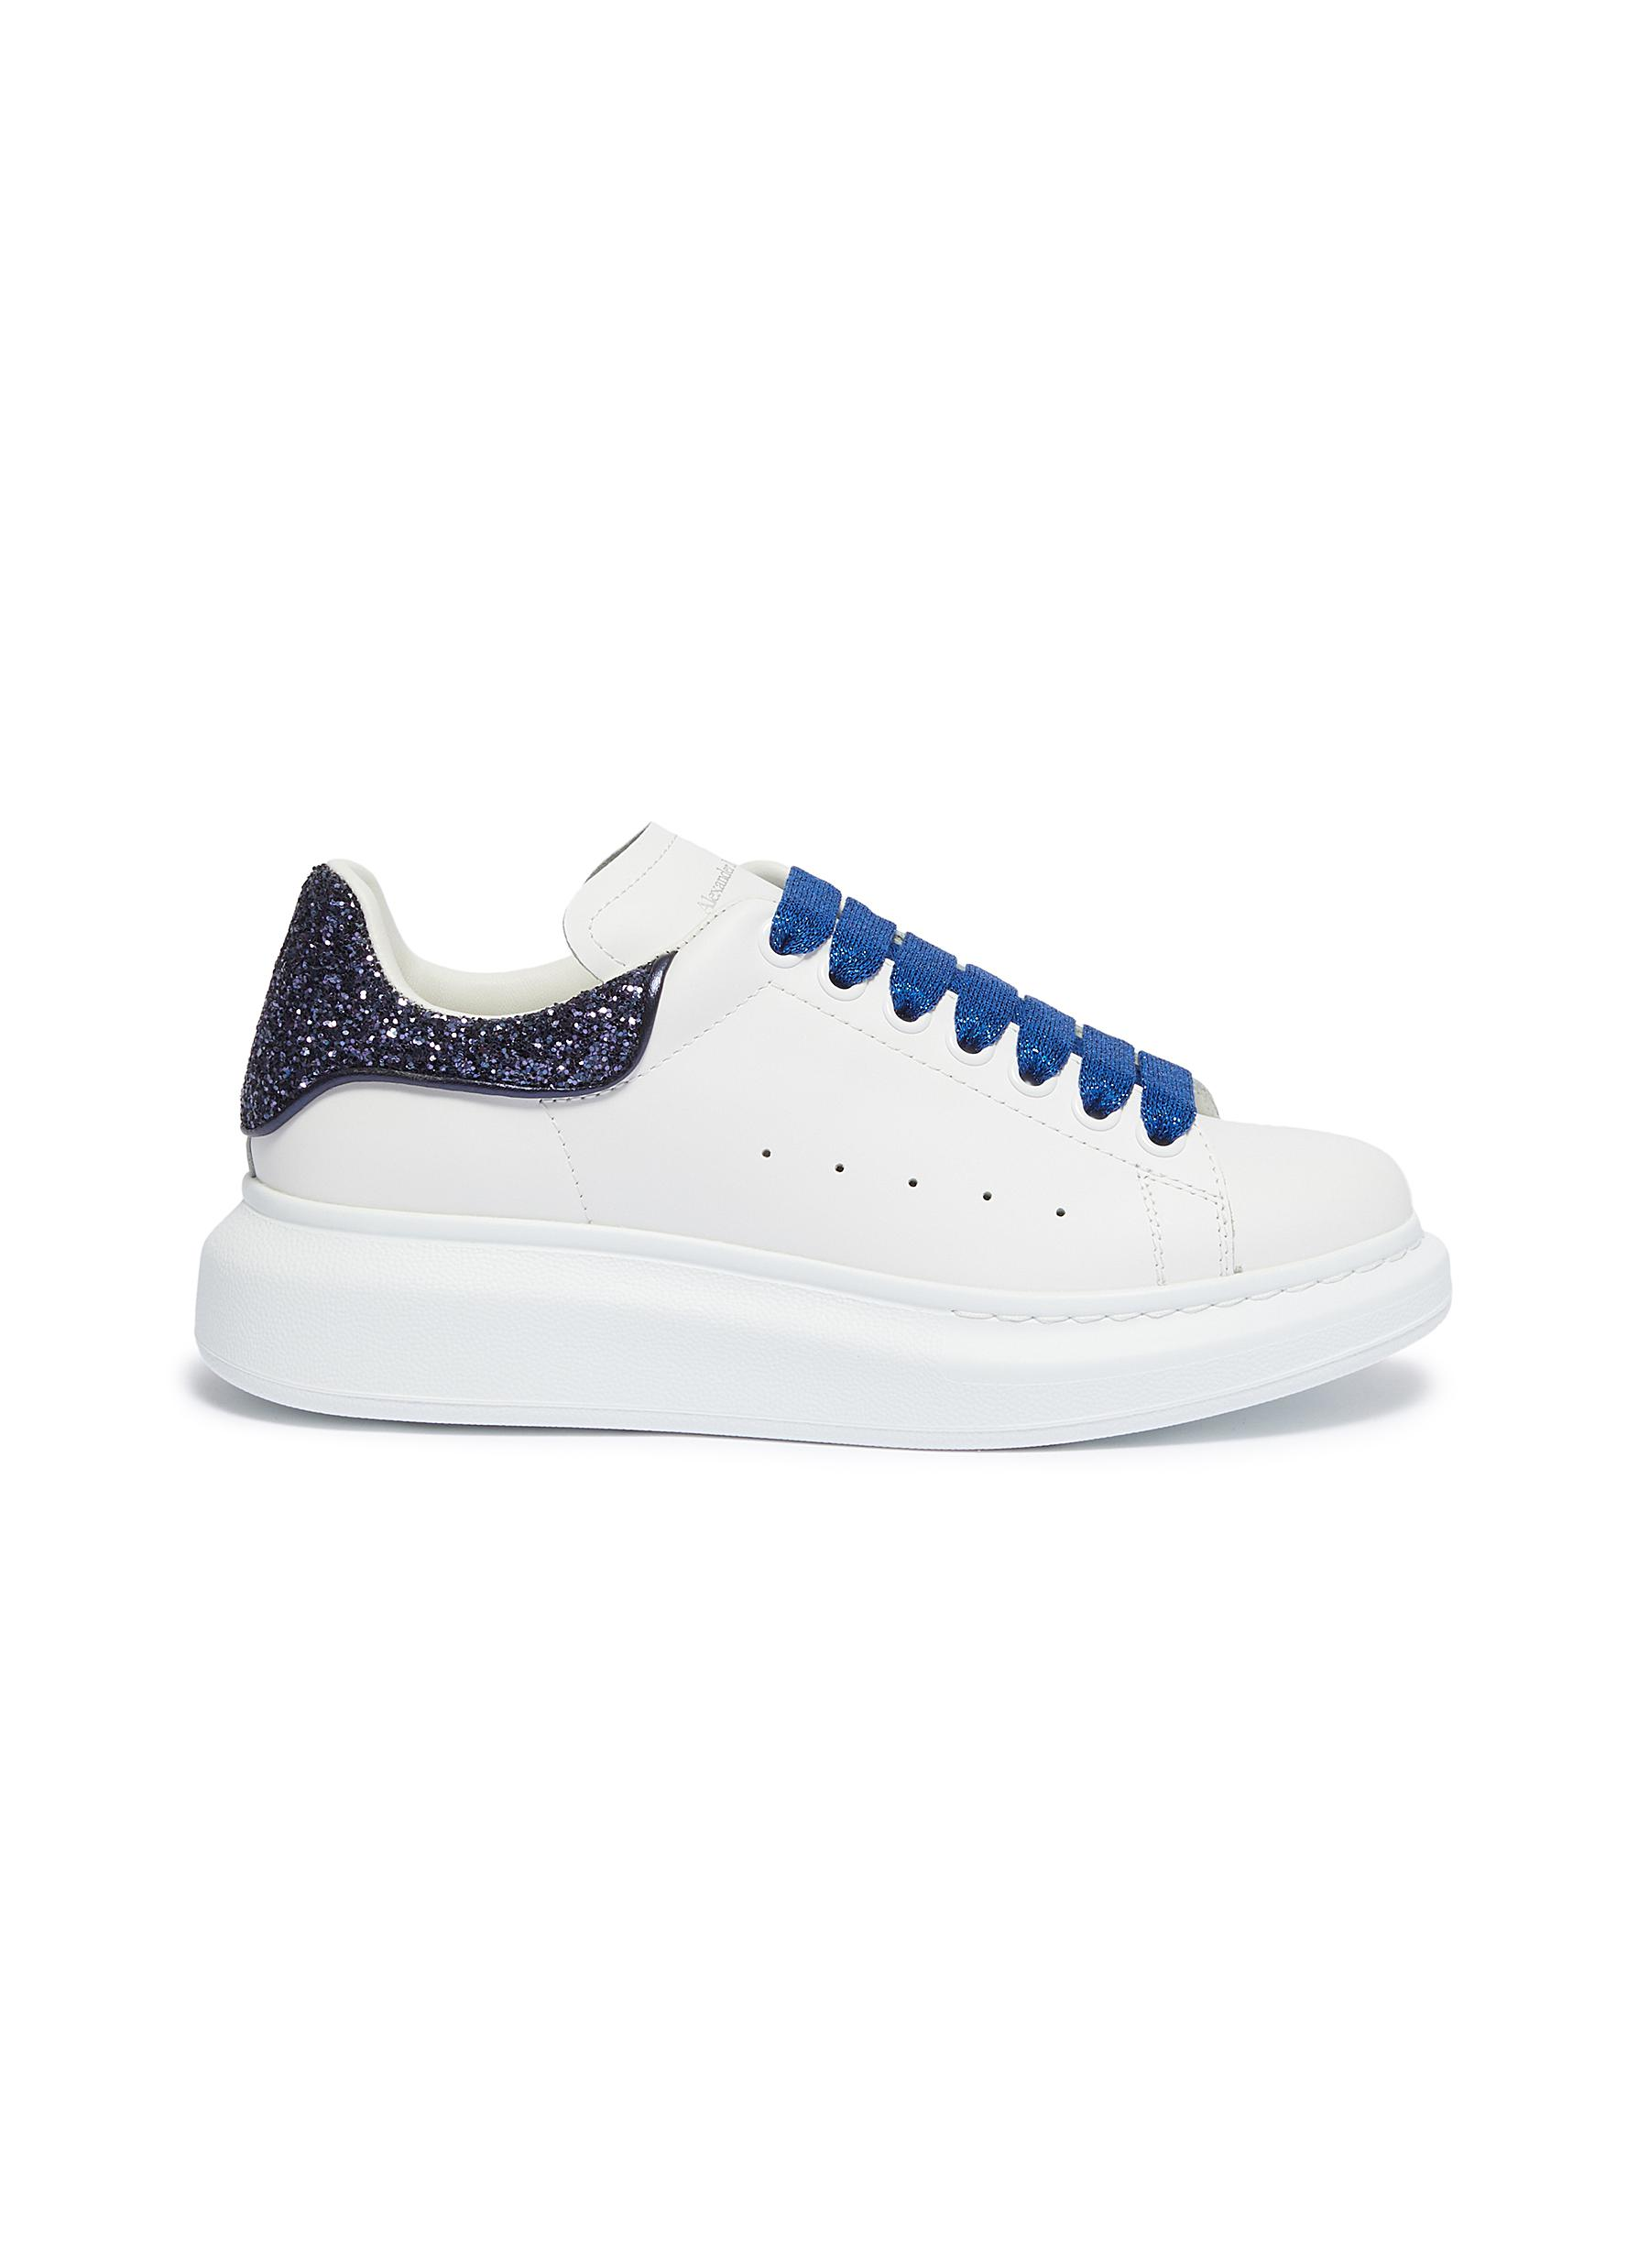 Oversized Sneaker in leather with coarse glitter collar by Alexander Mcqueen